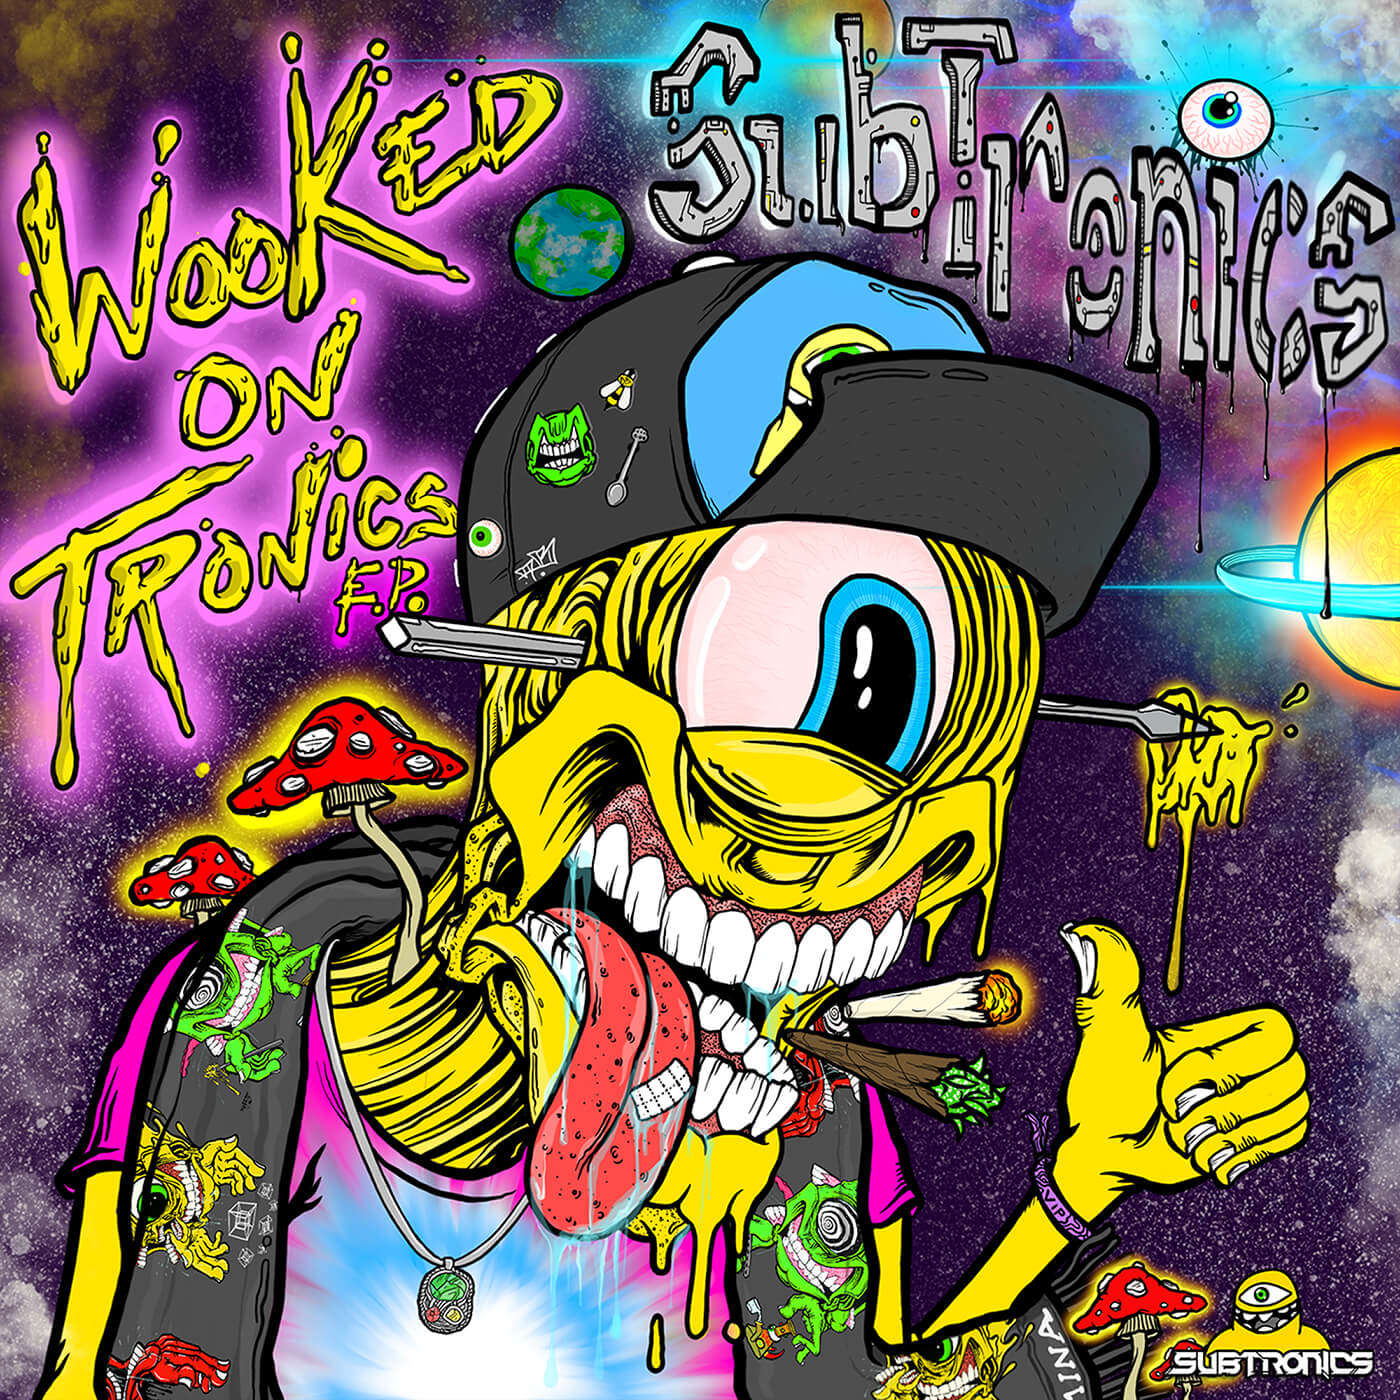 Artwork for Subtronics Wooked On Tronics EP